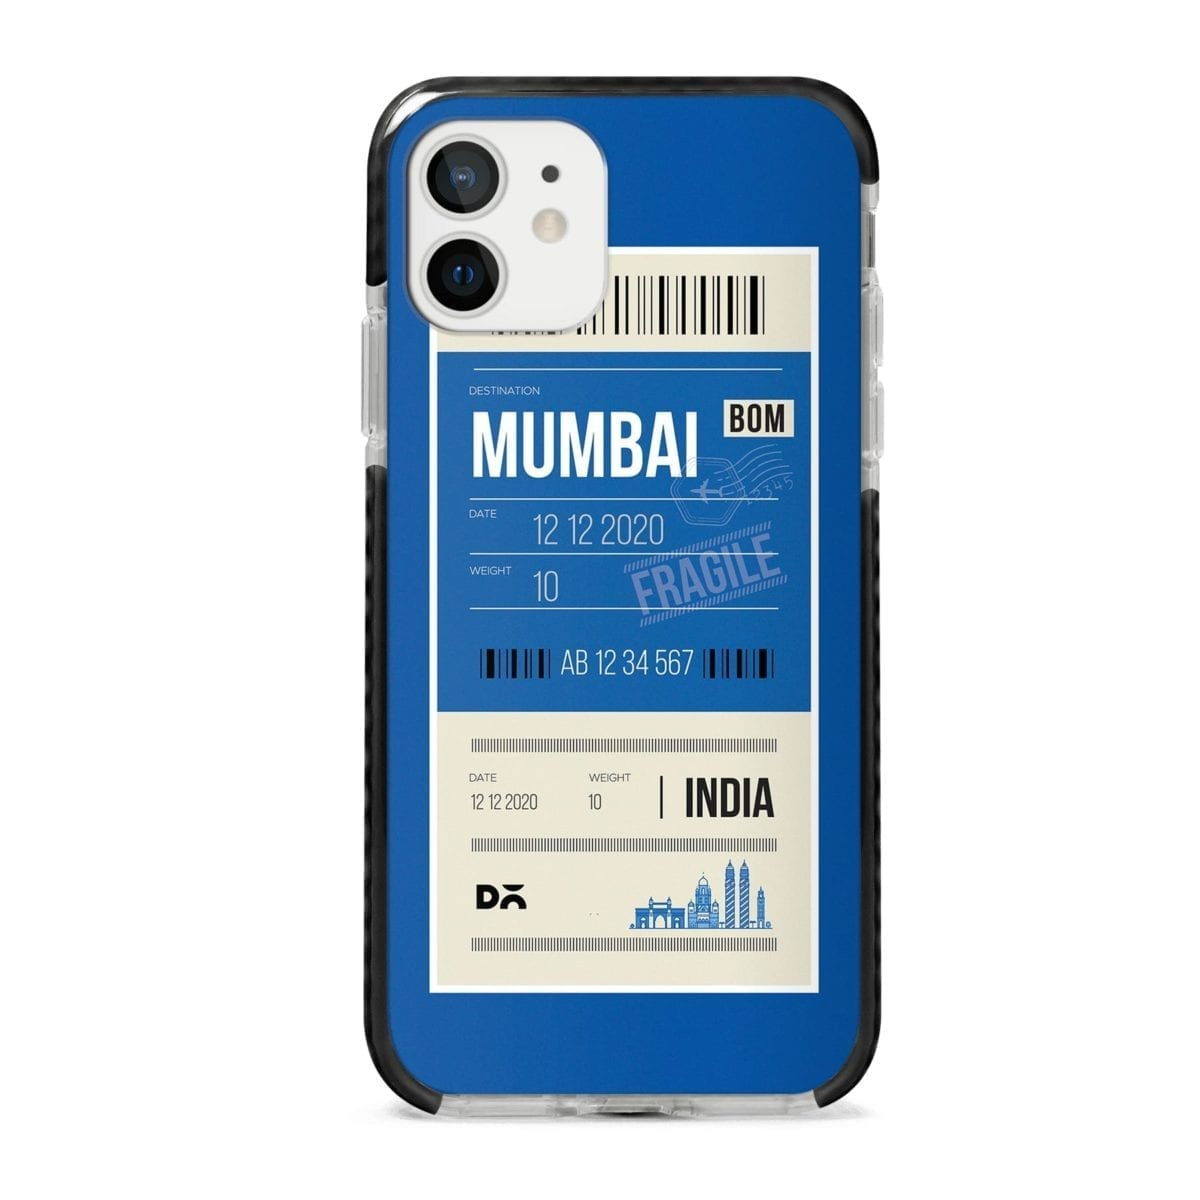 Mumbai City Tag Stride Case Cover for Apple iPhone 12 Mini and Apple iPhone 12 with great design and shock proof | Klippik | Online Shopping | Kuwait UAE Saudi